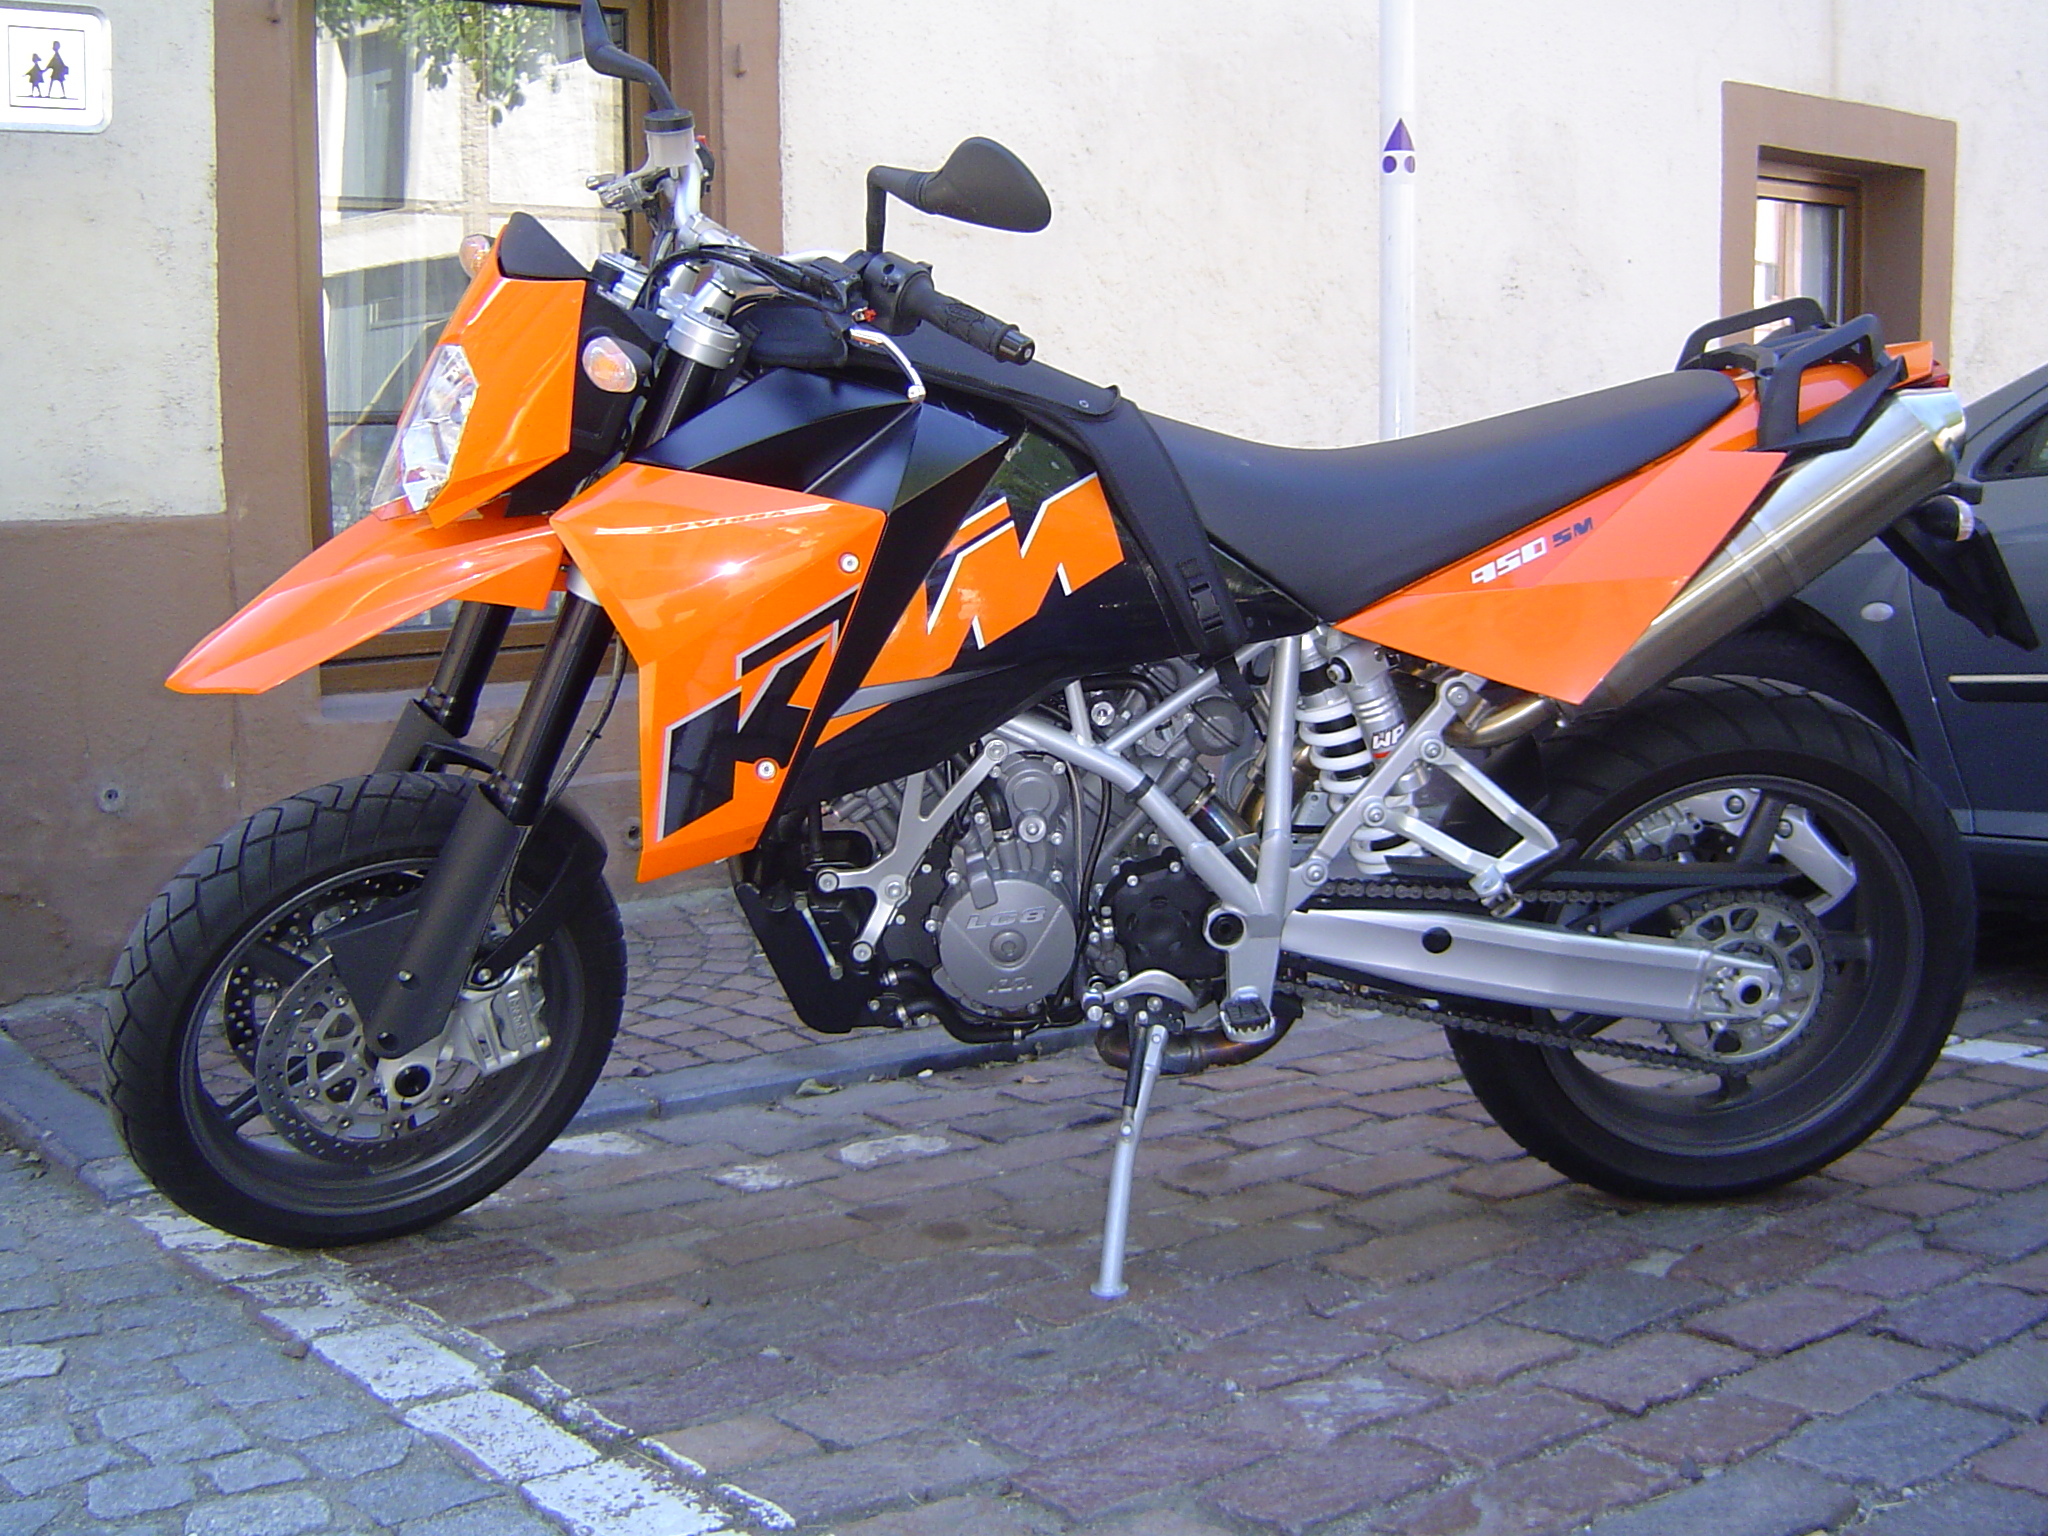 think I've found my upgrade! KTM 950 SM Anyone?